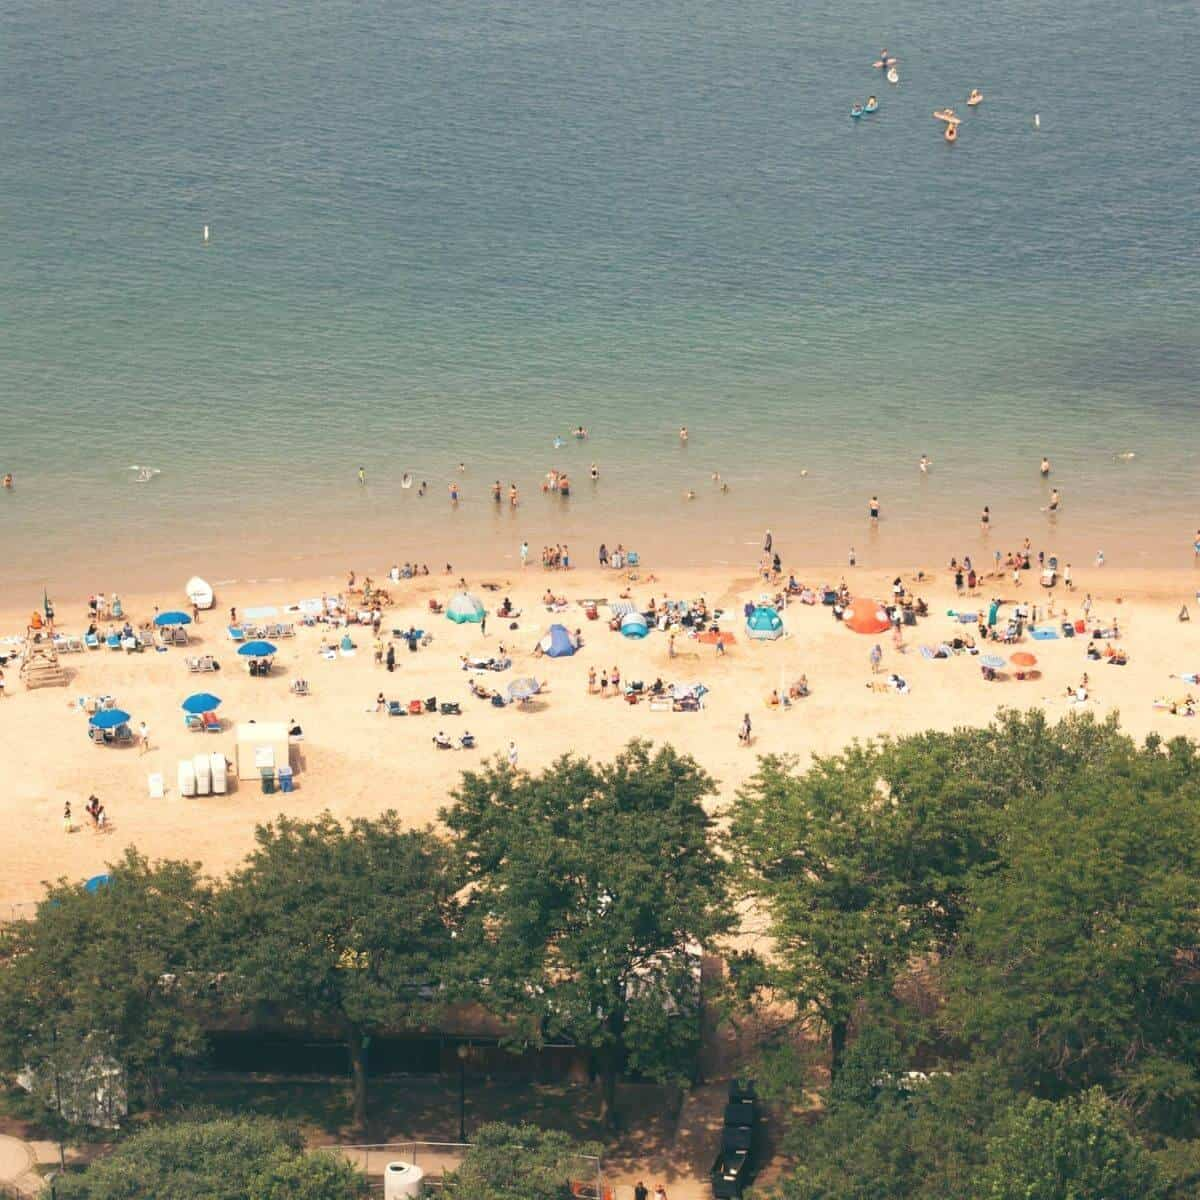 Aerial view of trees and people at Oak Street Beach.